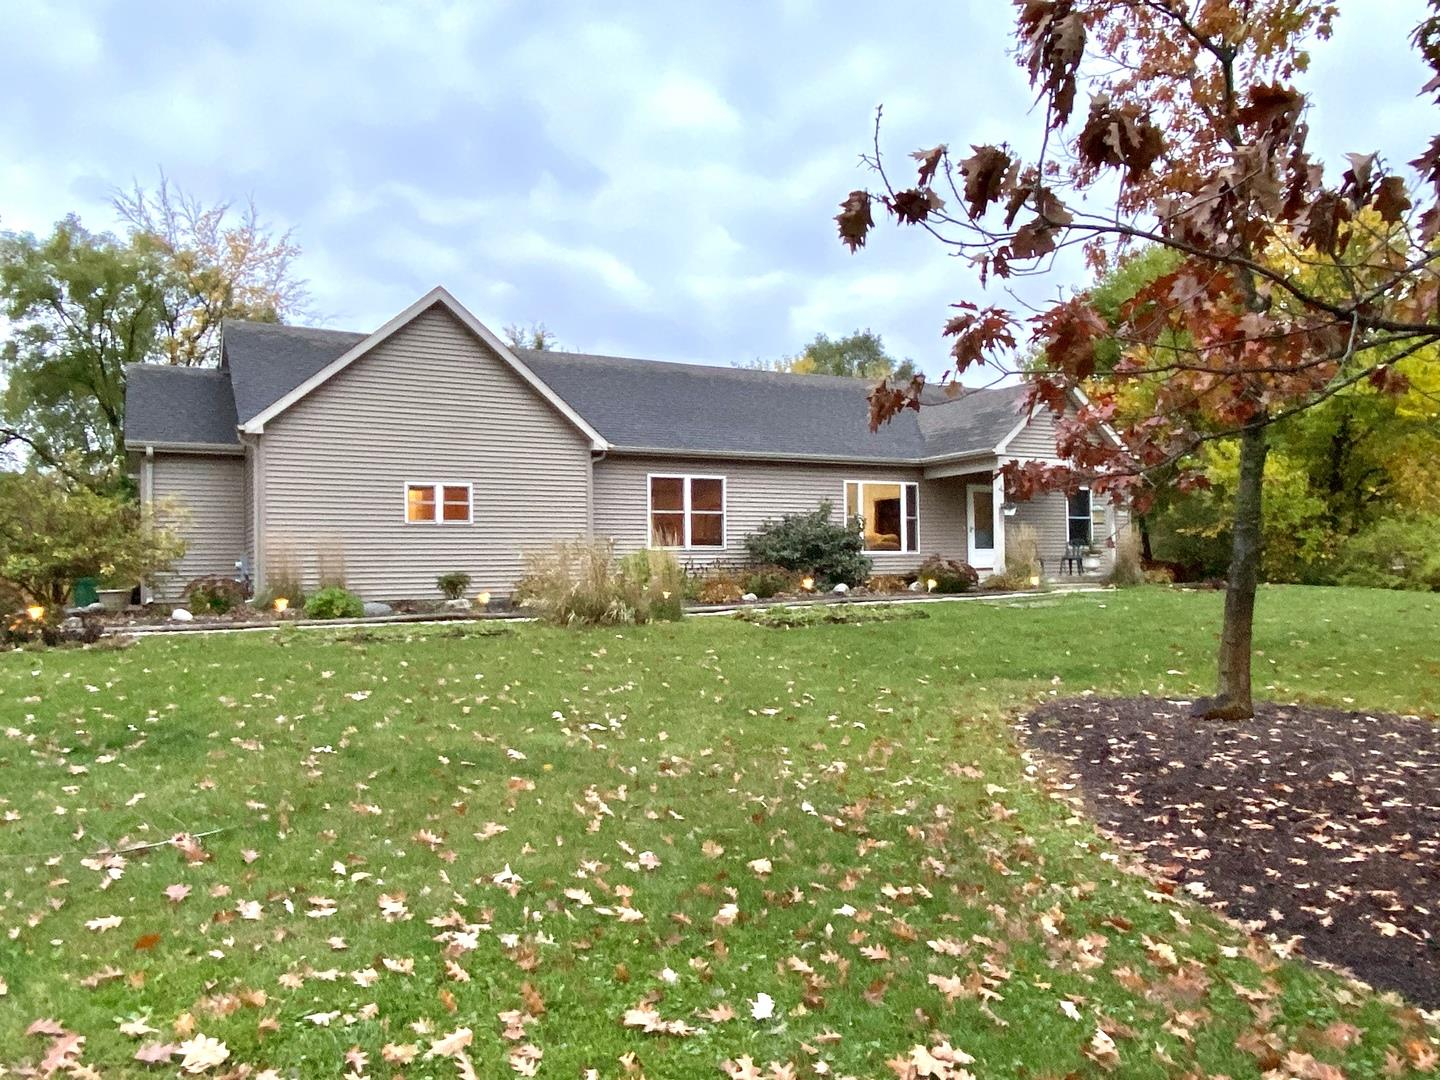 24763 W Monaville Road, Lake Villa, IL 60046 - #: 10916039